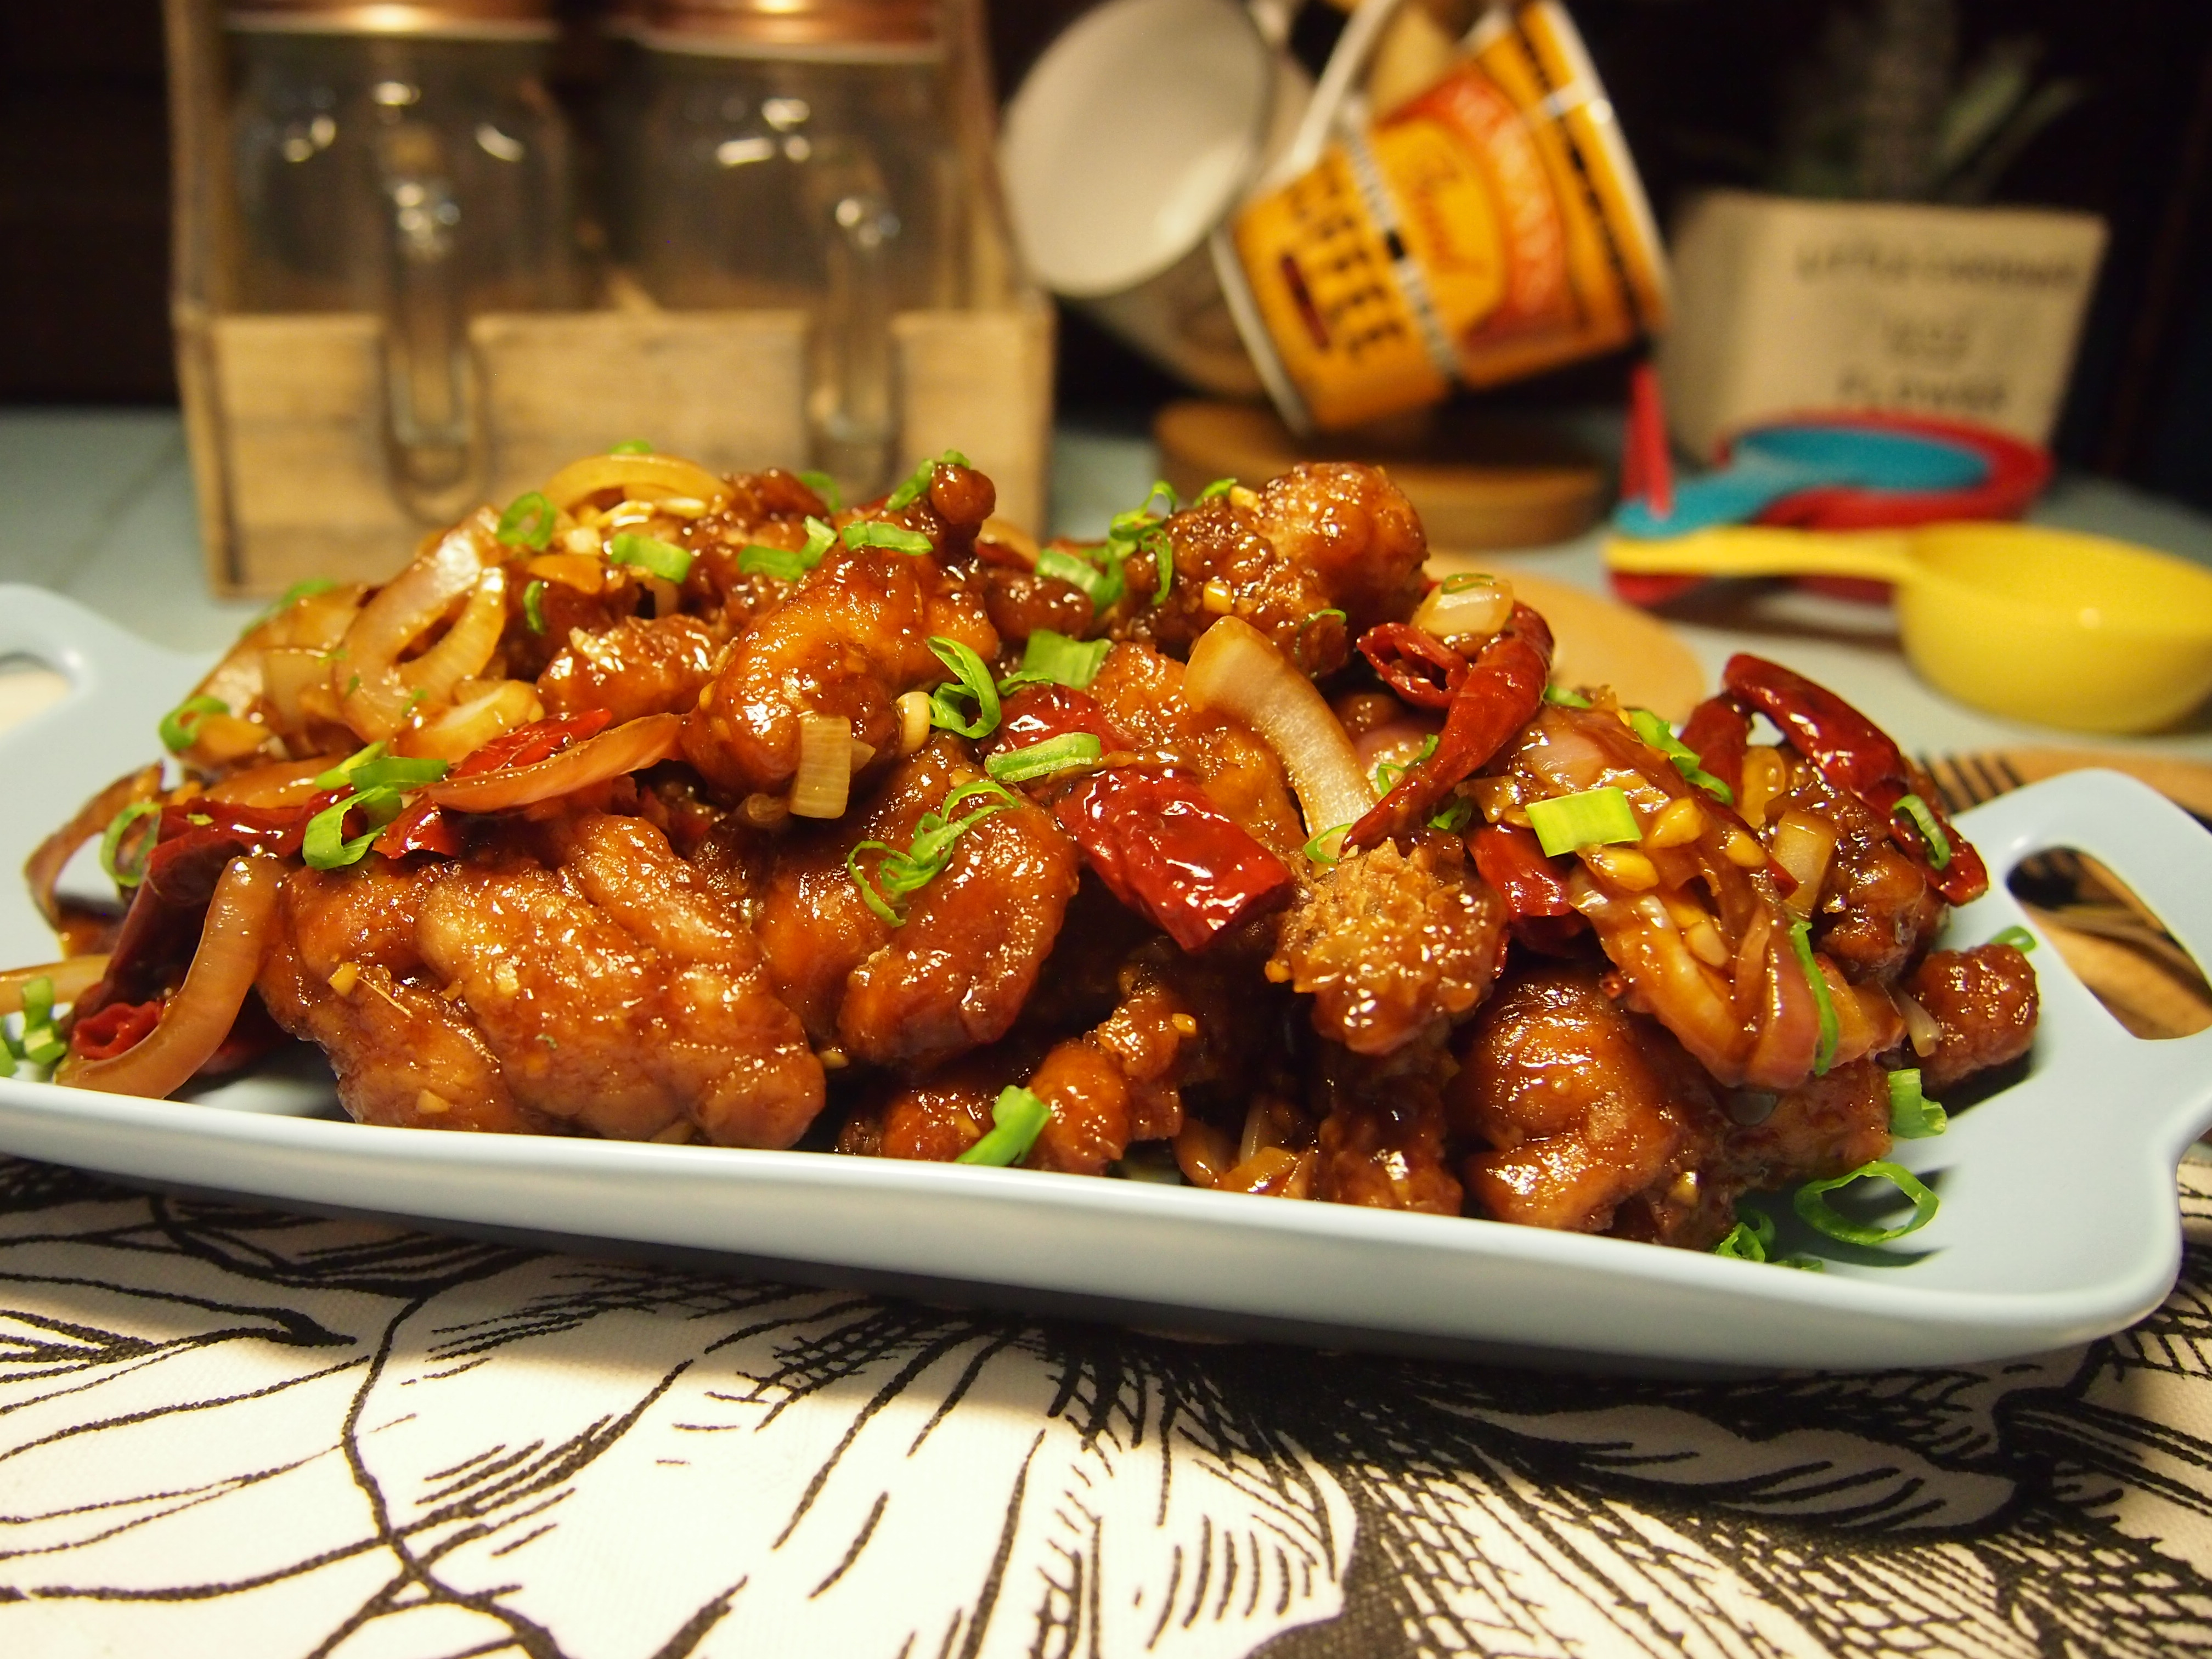 SUPER EASY General Tso's Chicken | Sweet & Sour Chicken 酸甜鸡